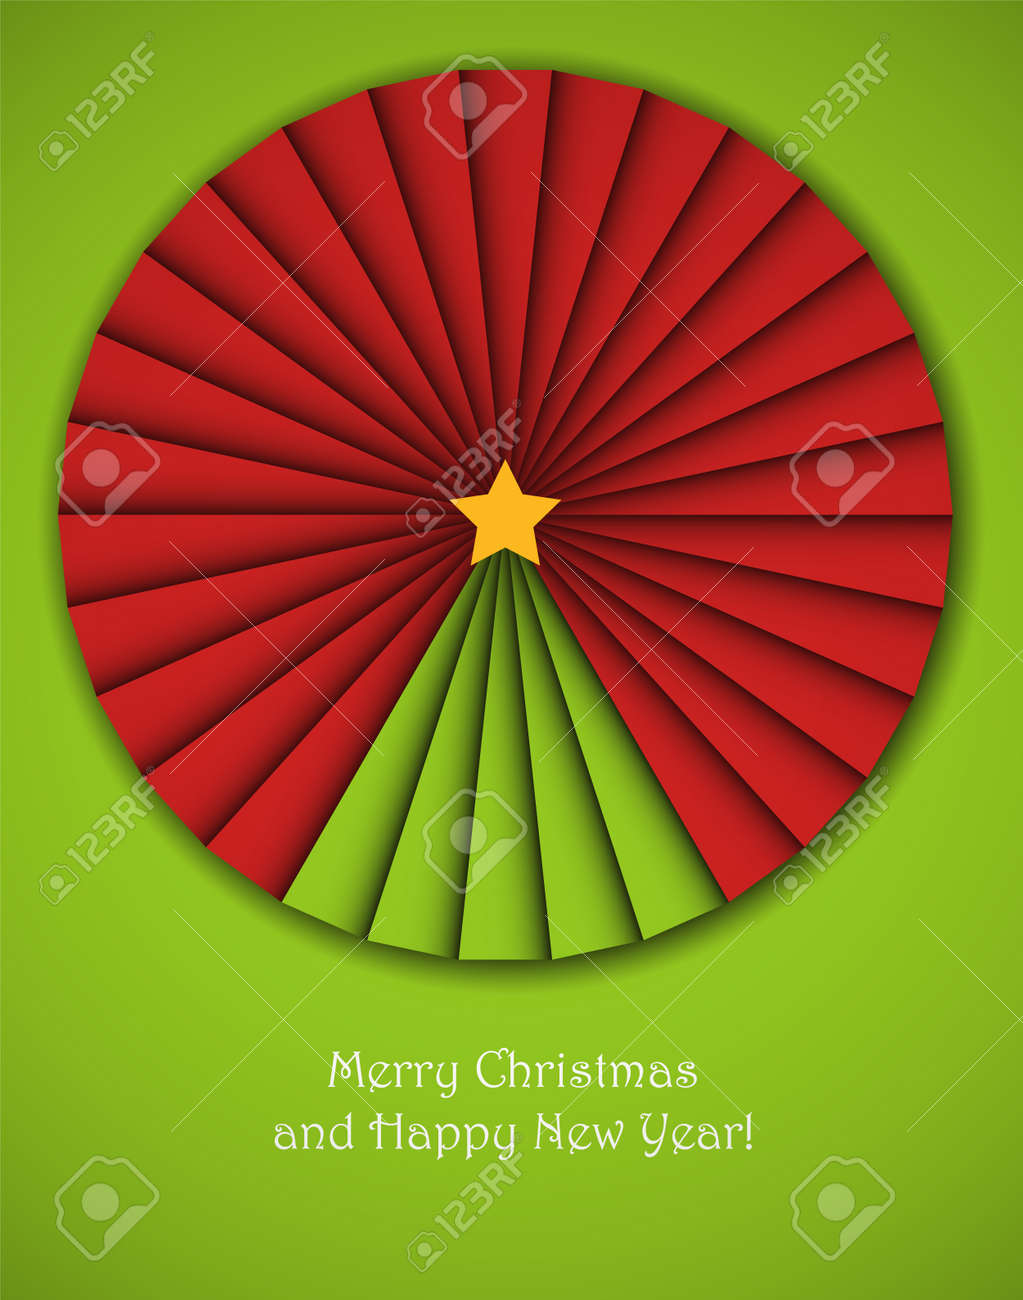 Christmas background with an origami decorative circle with a new year tree in it. Stock Vector - 15528361